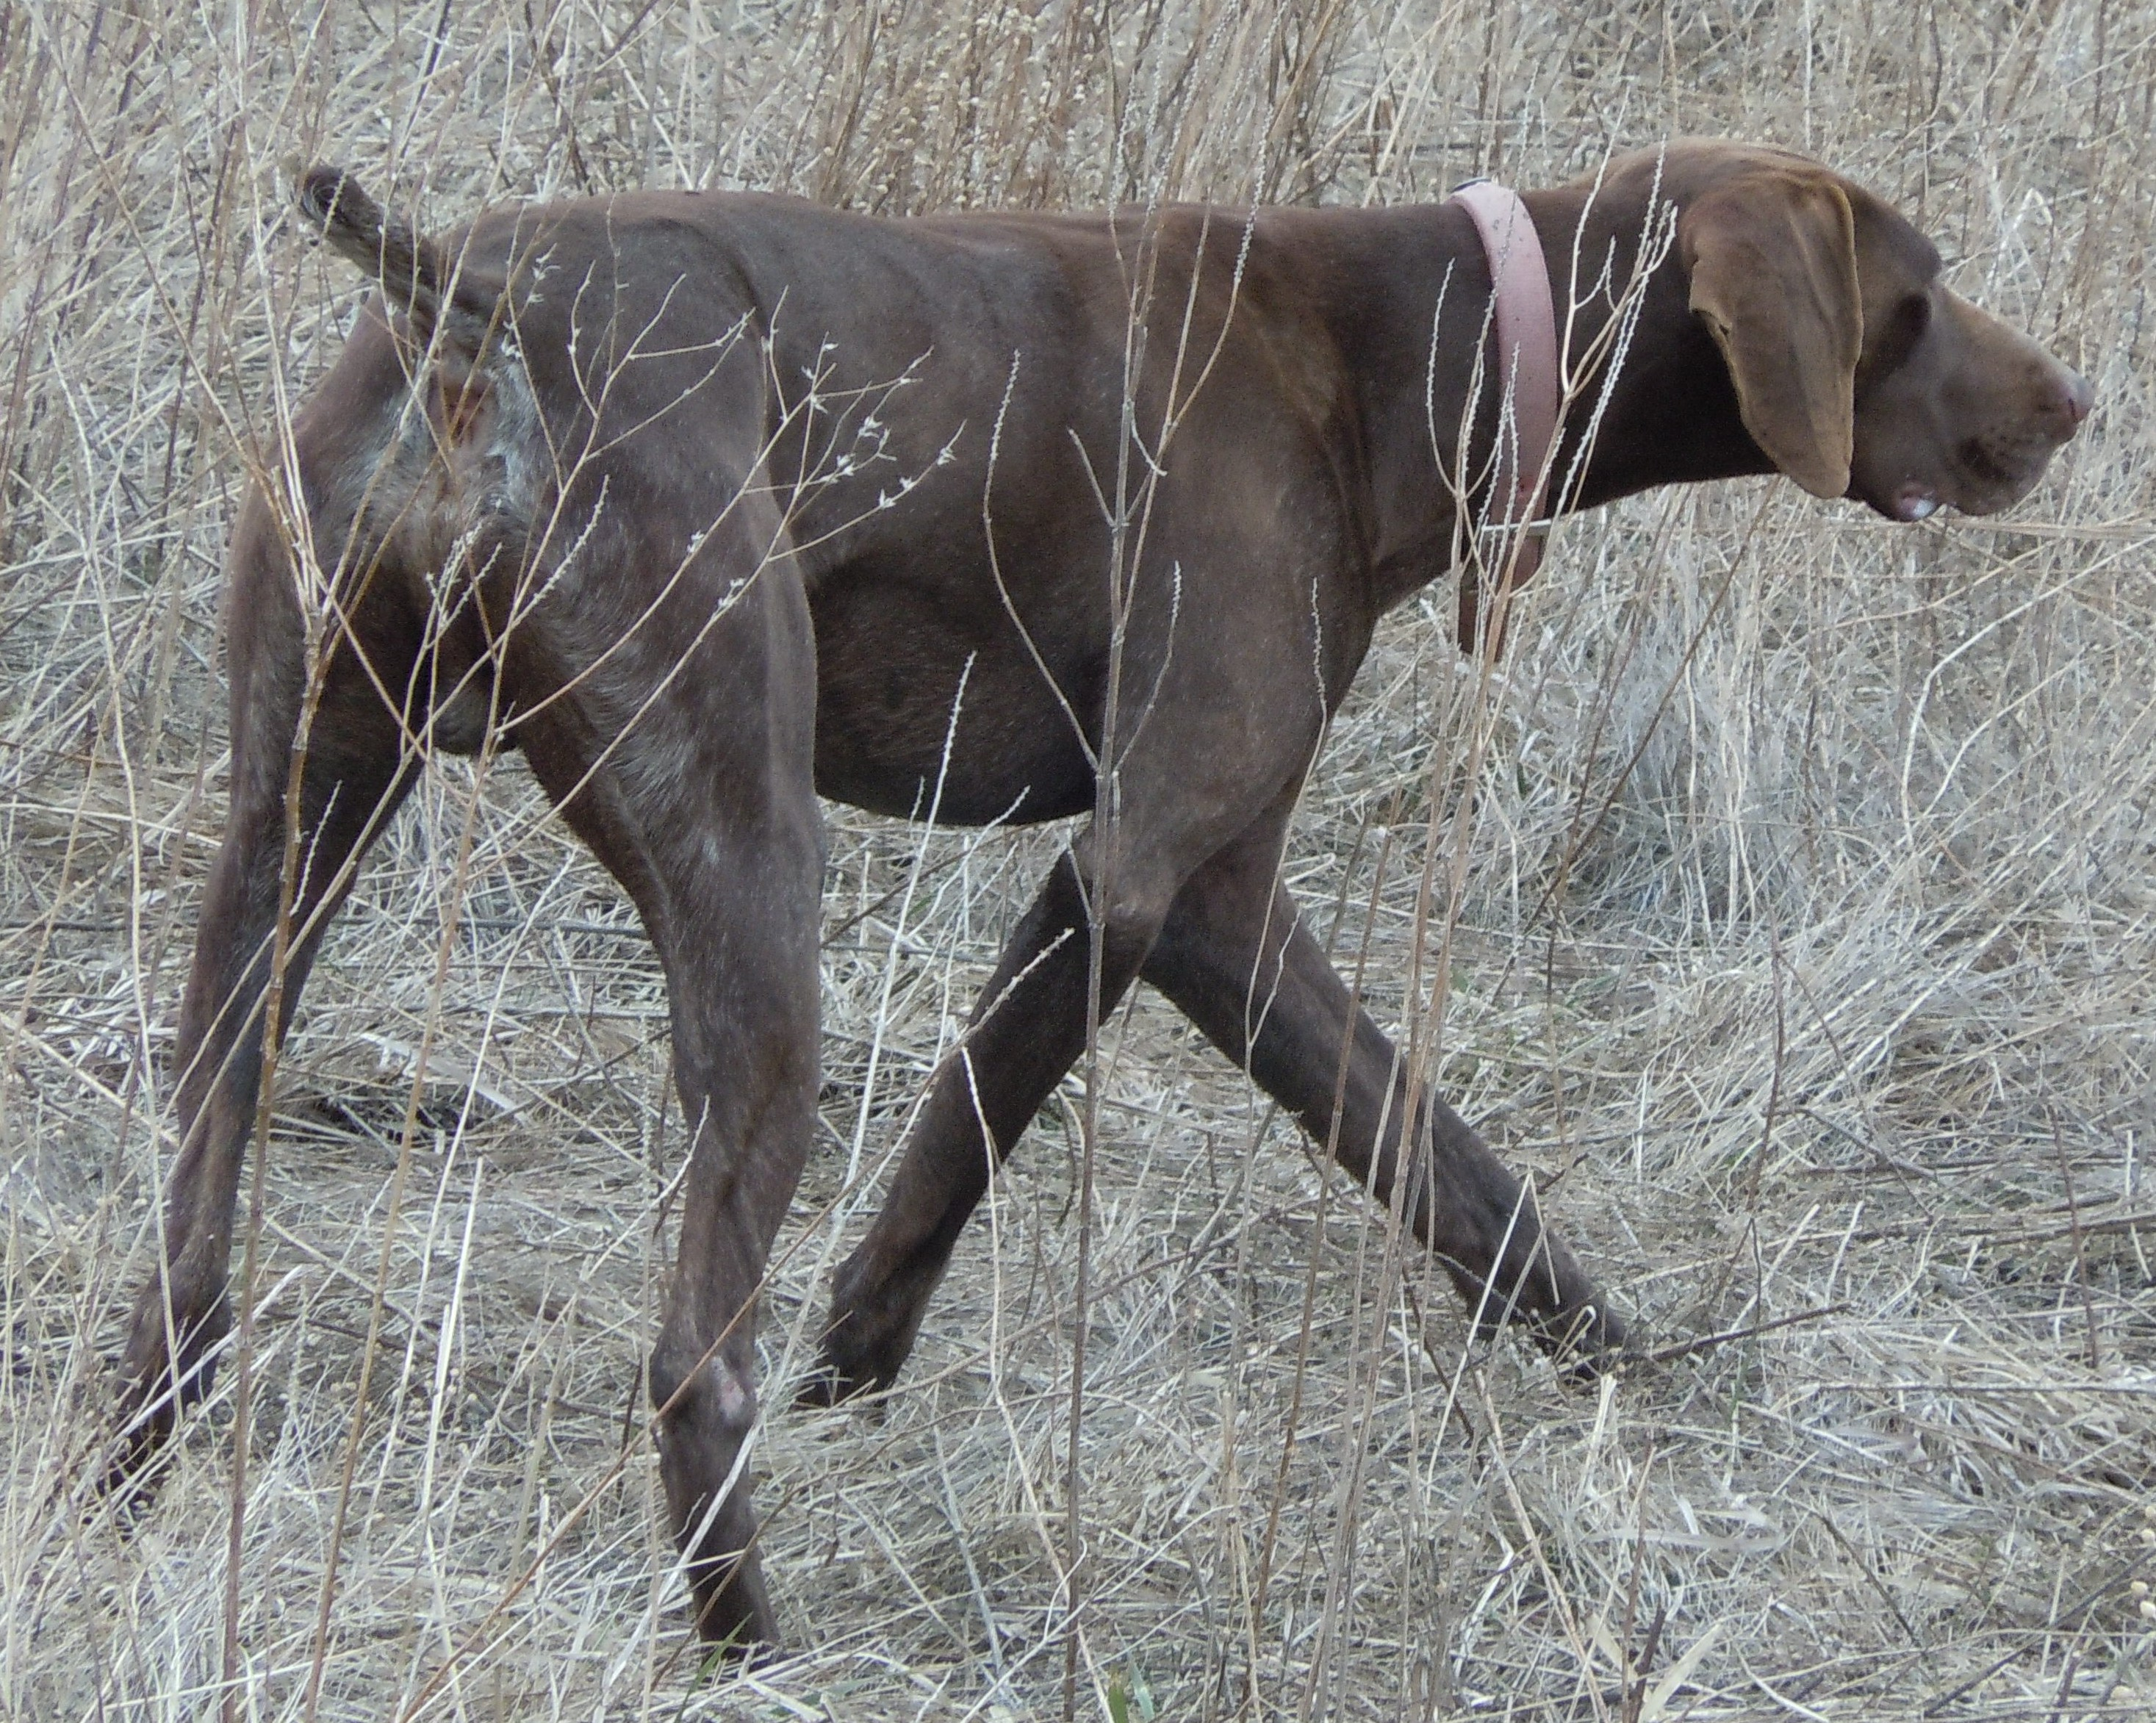 Tennessee Treeing Brindle Dog: Tennessee Tennessee Treeing Brindle Gallery Tennessee Treeing Brindle Breed